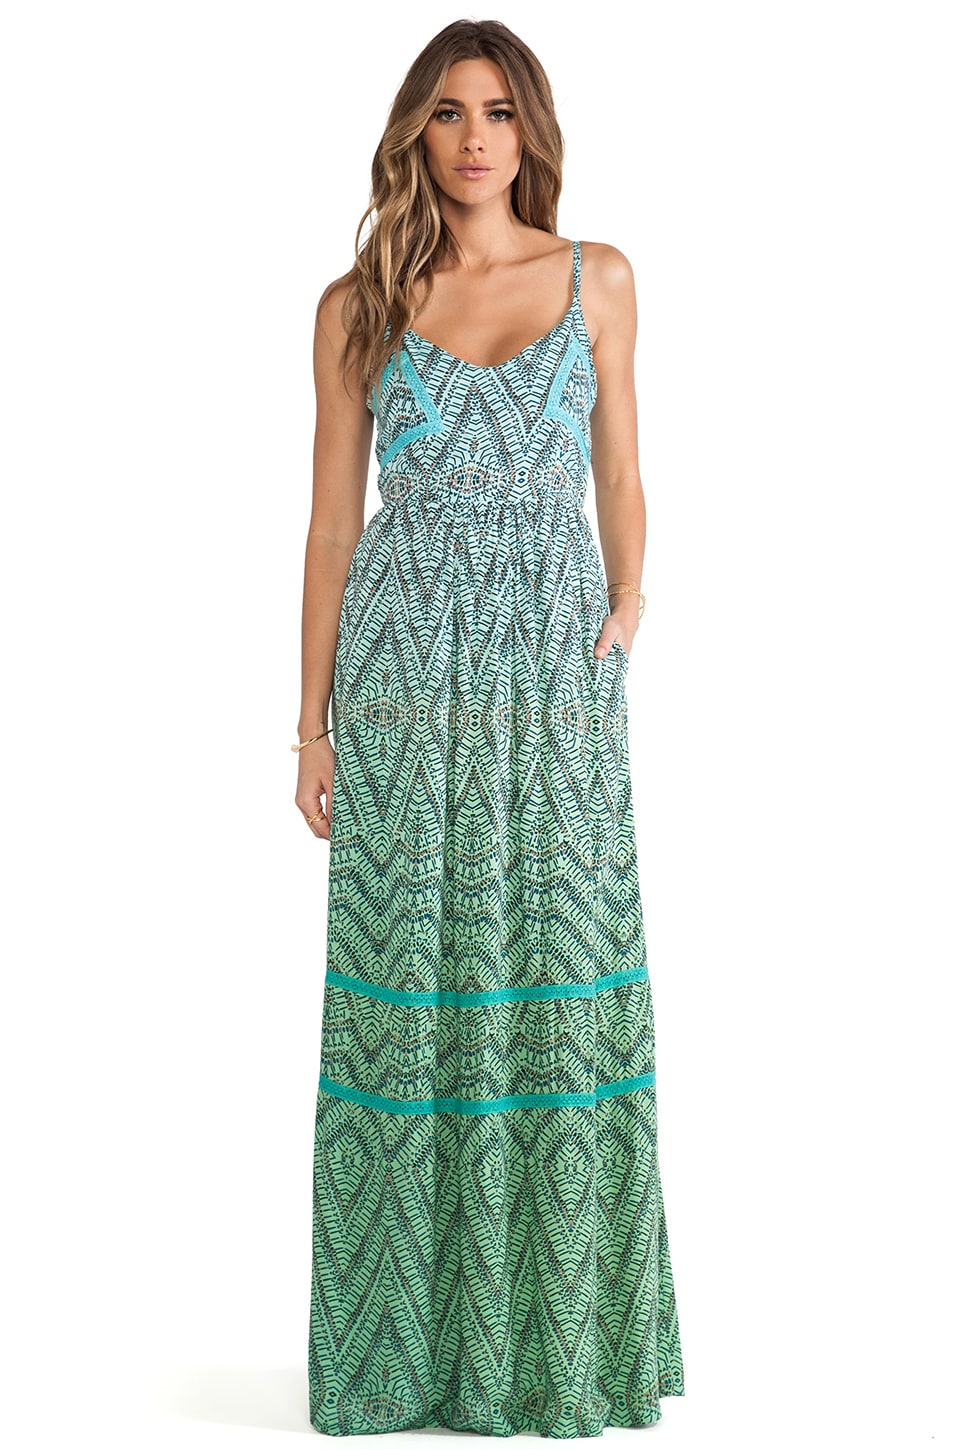 Gypsy 05 Cut Out Maxi Dress in Lagoon